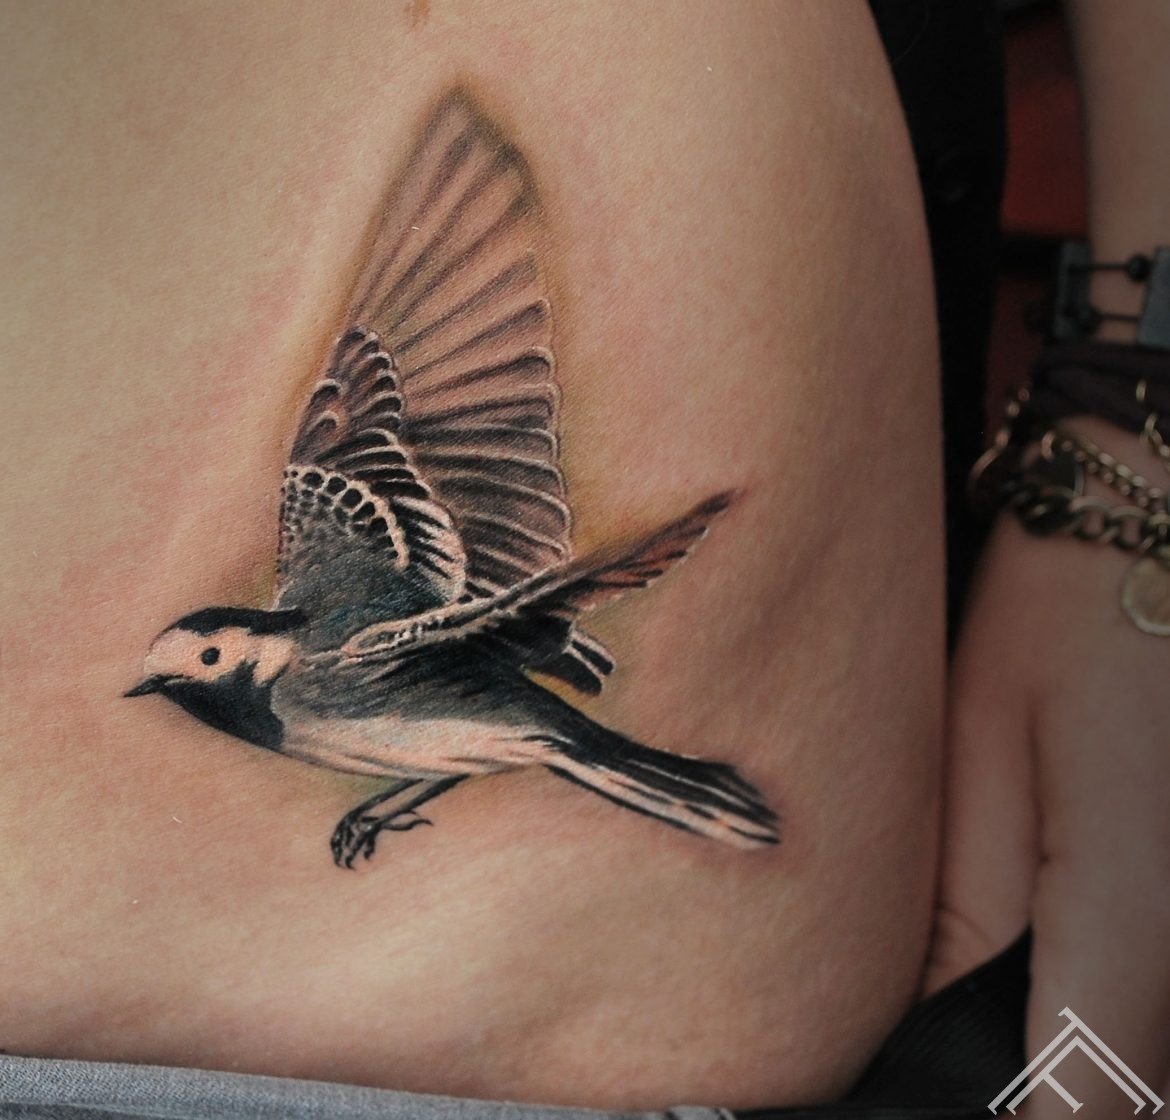 bird_tattoo_marispavlo_tattoofrequency_art_tattoostudio_rigatattoosaloon